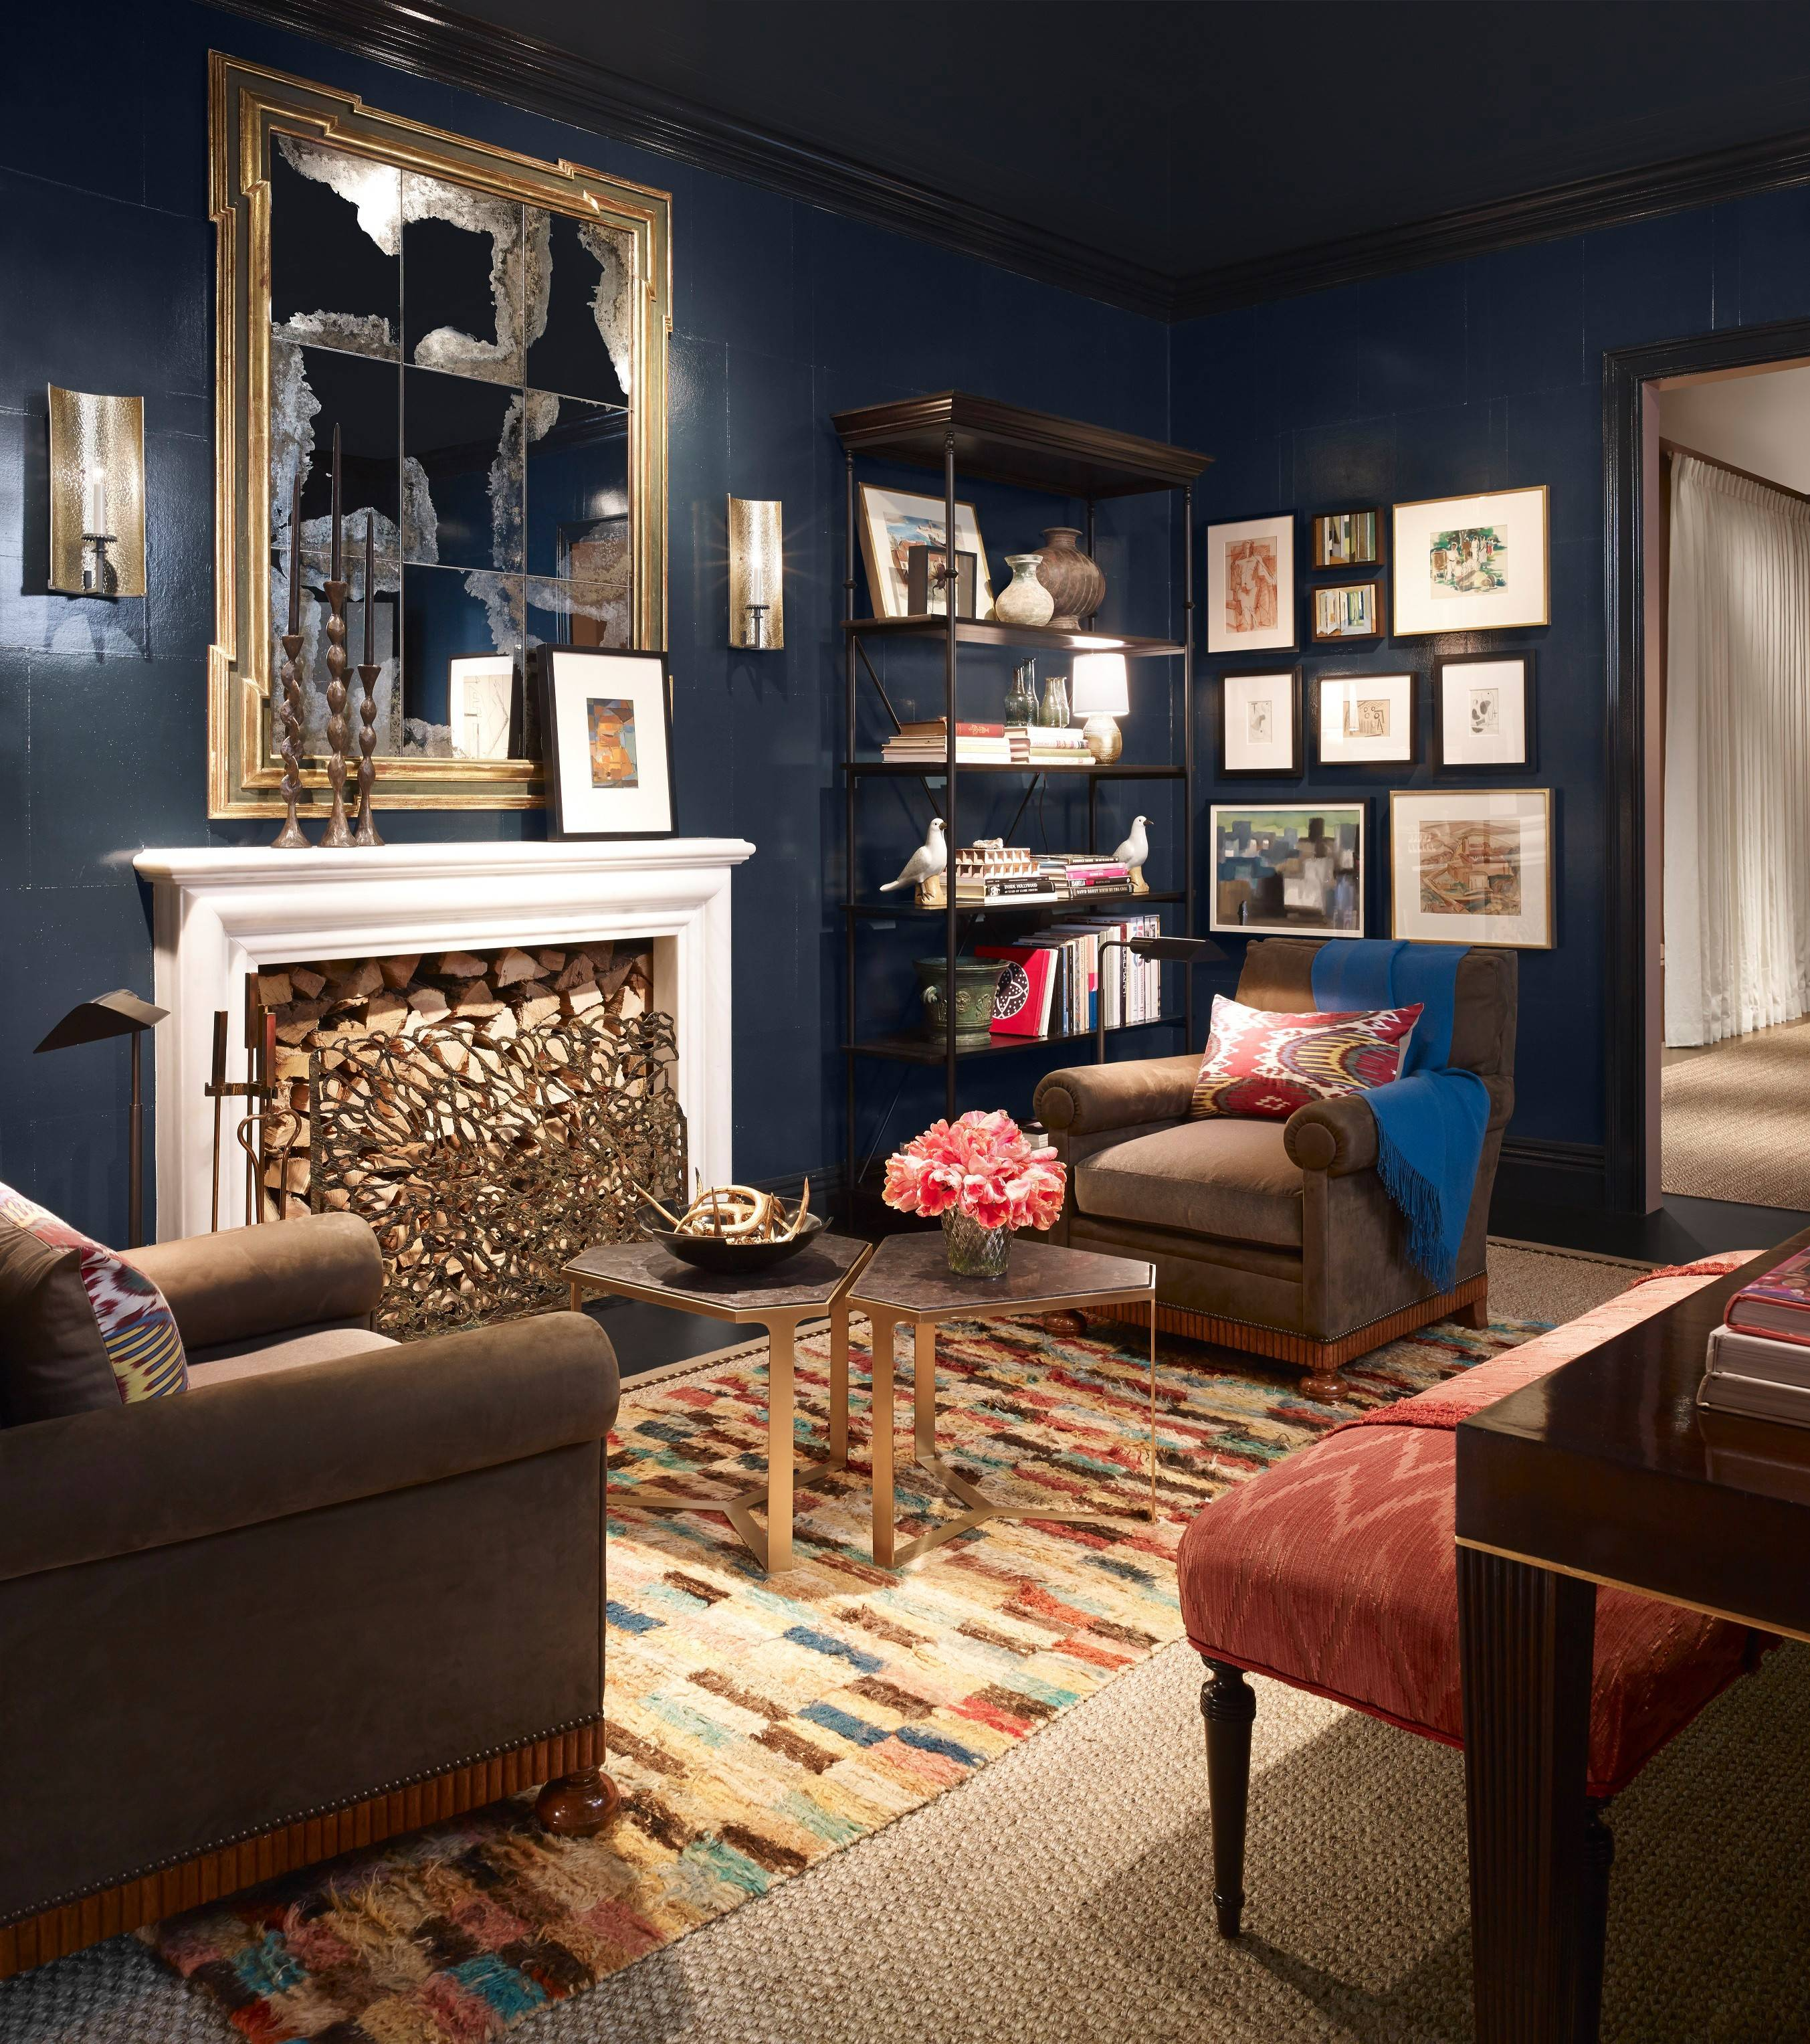 In the study by Jessica Lagrange, the walls are a dark, smokey Hague Blue from Farrow & Ball.